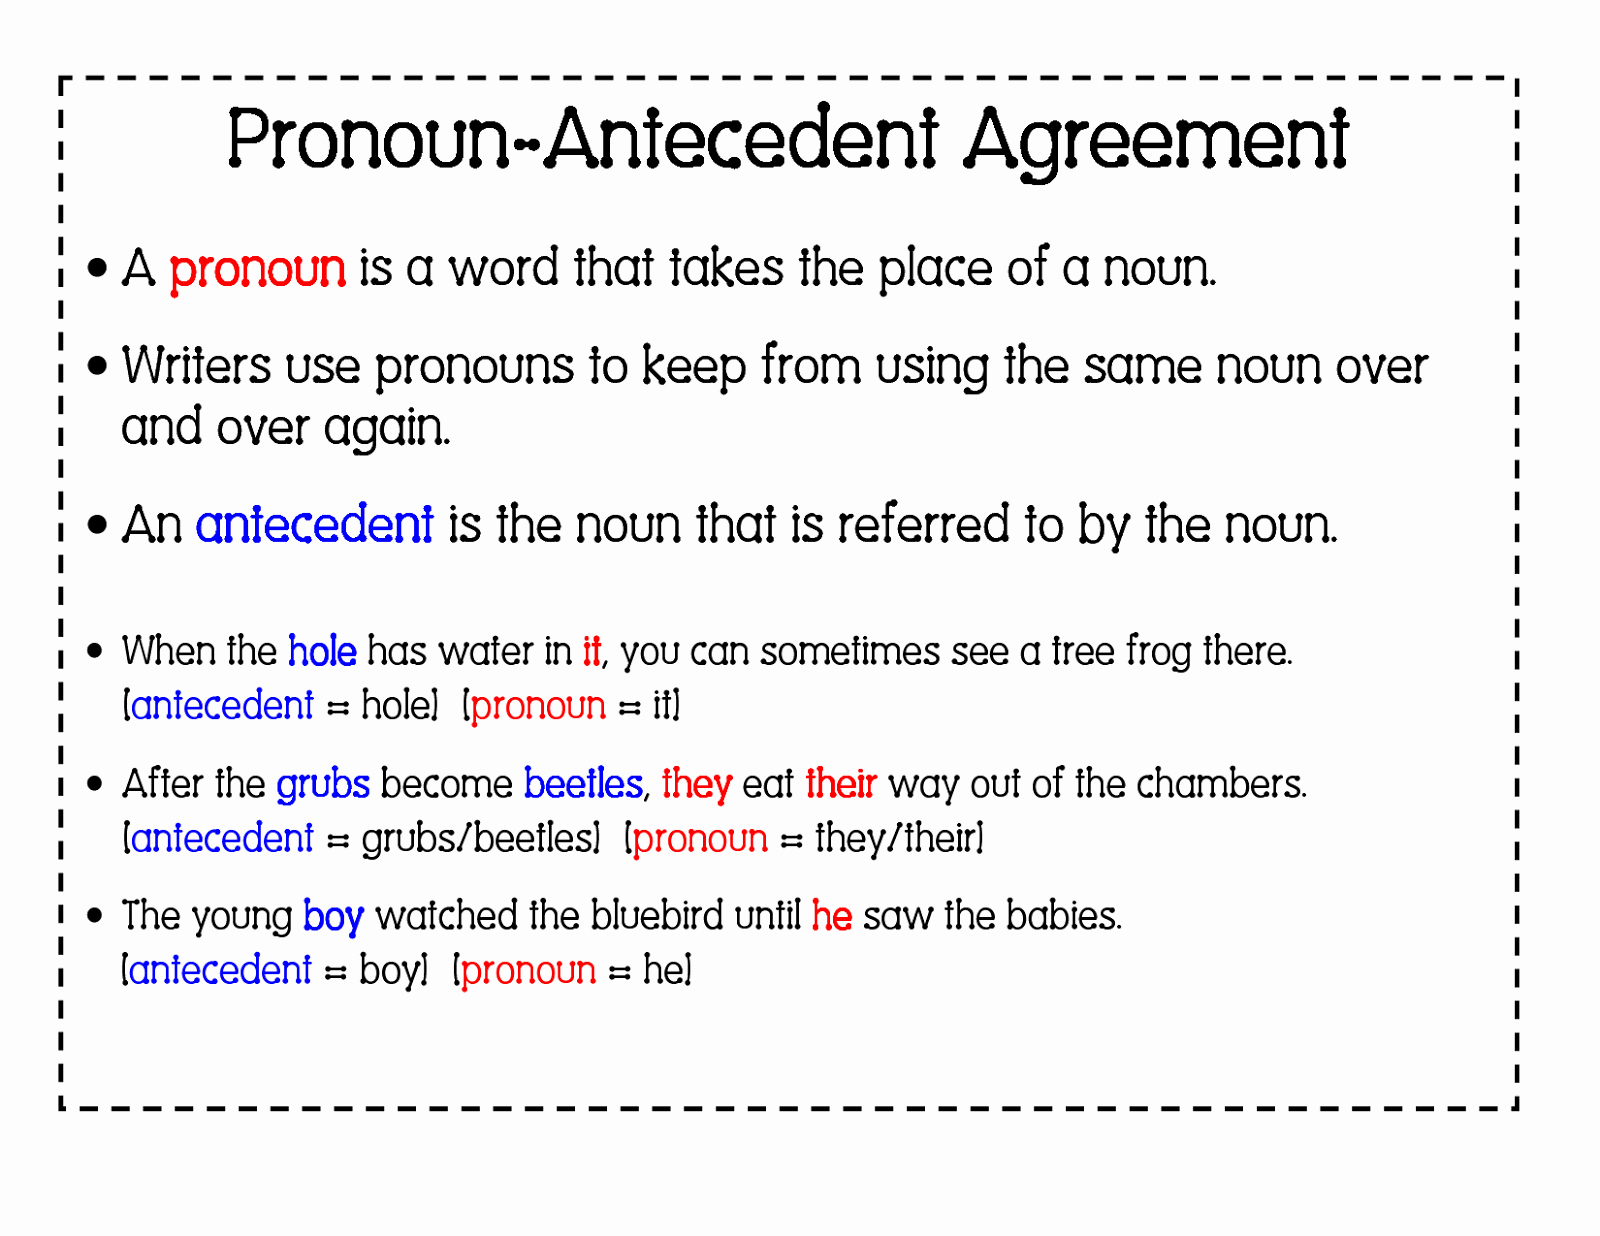 Pronoun Antecedent Agreement Worksheet Beautiful 6th Grade English with Mr T Pronoun Antecedent Agreement